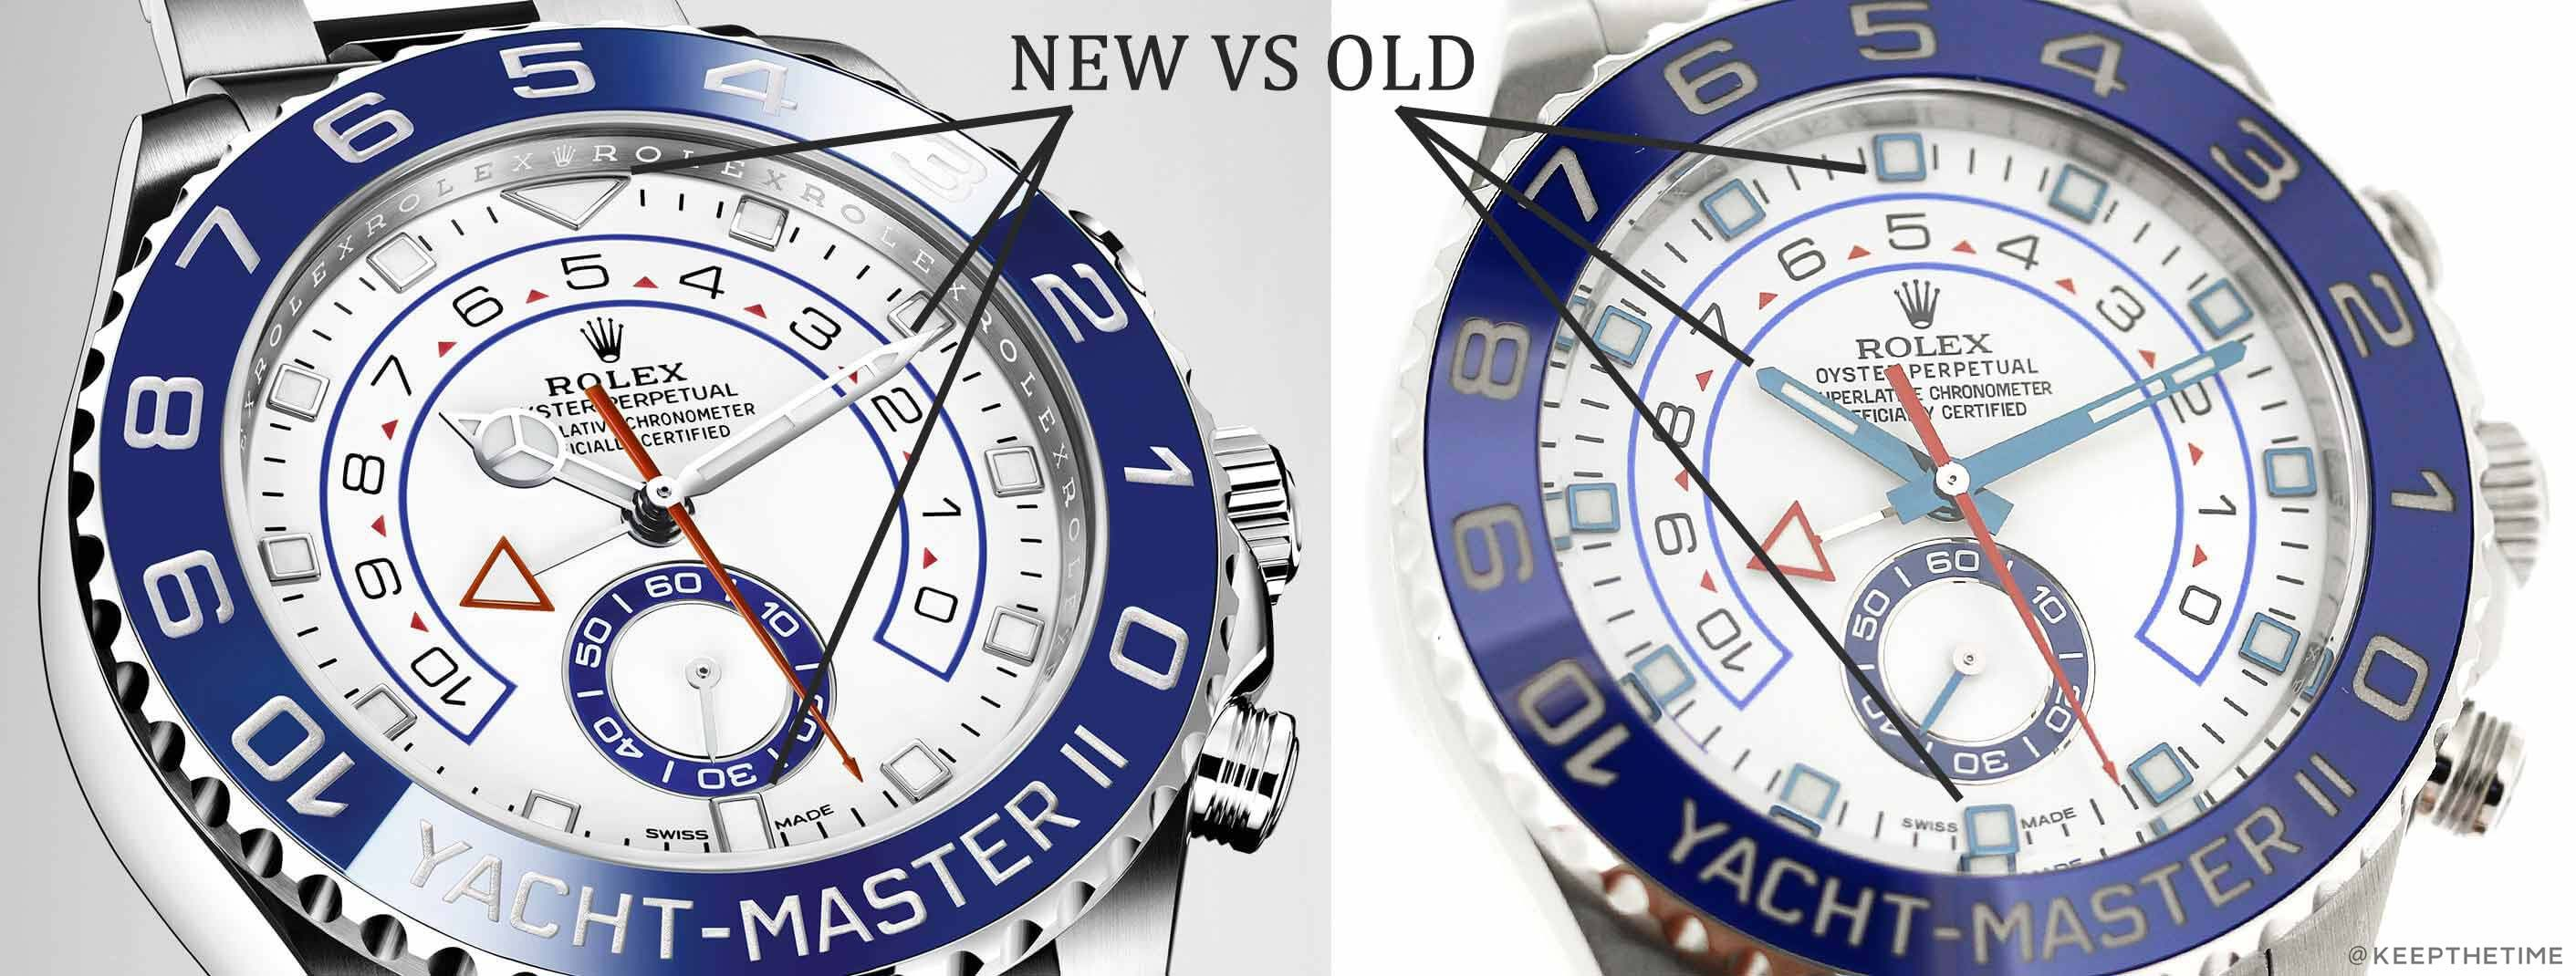 c446e6c68 Rolex Yacht-Master II 116680 Differences Compared: New 2017 VS Old ...